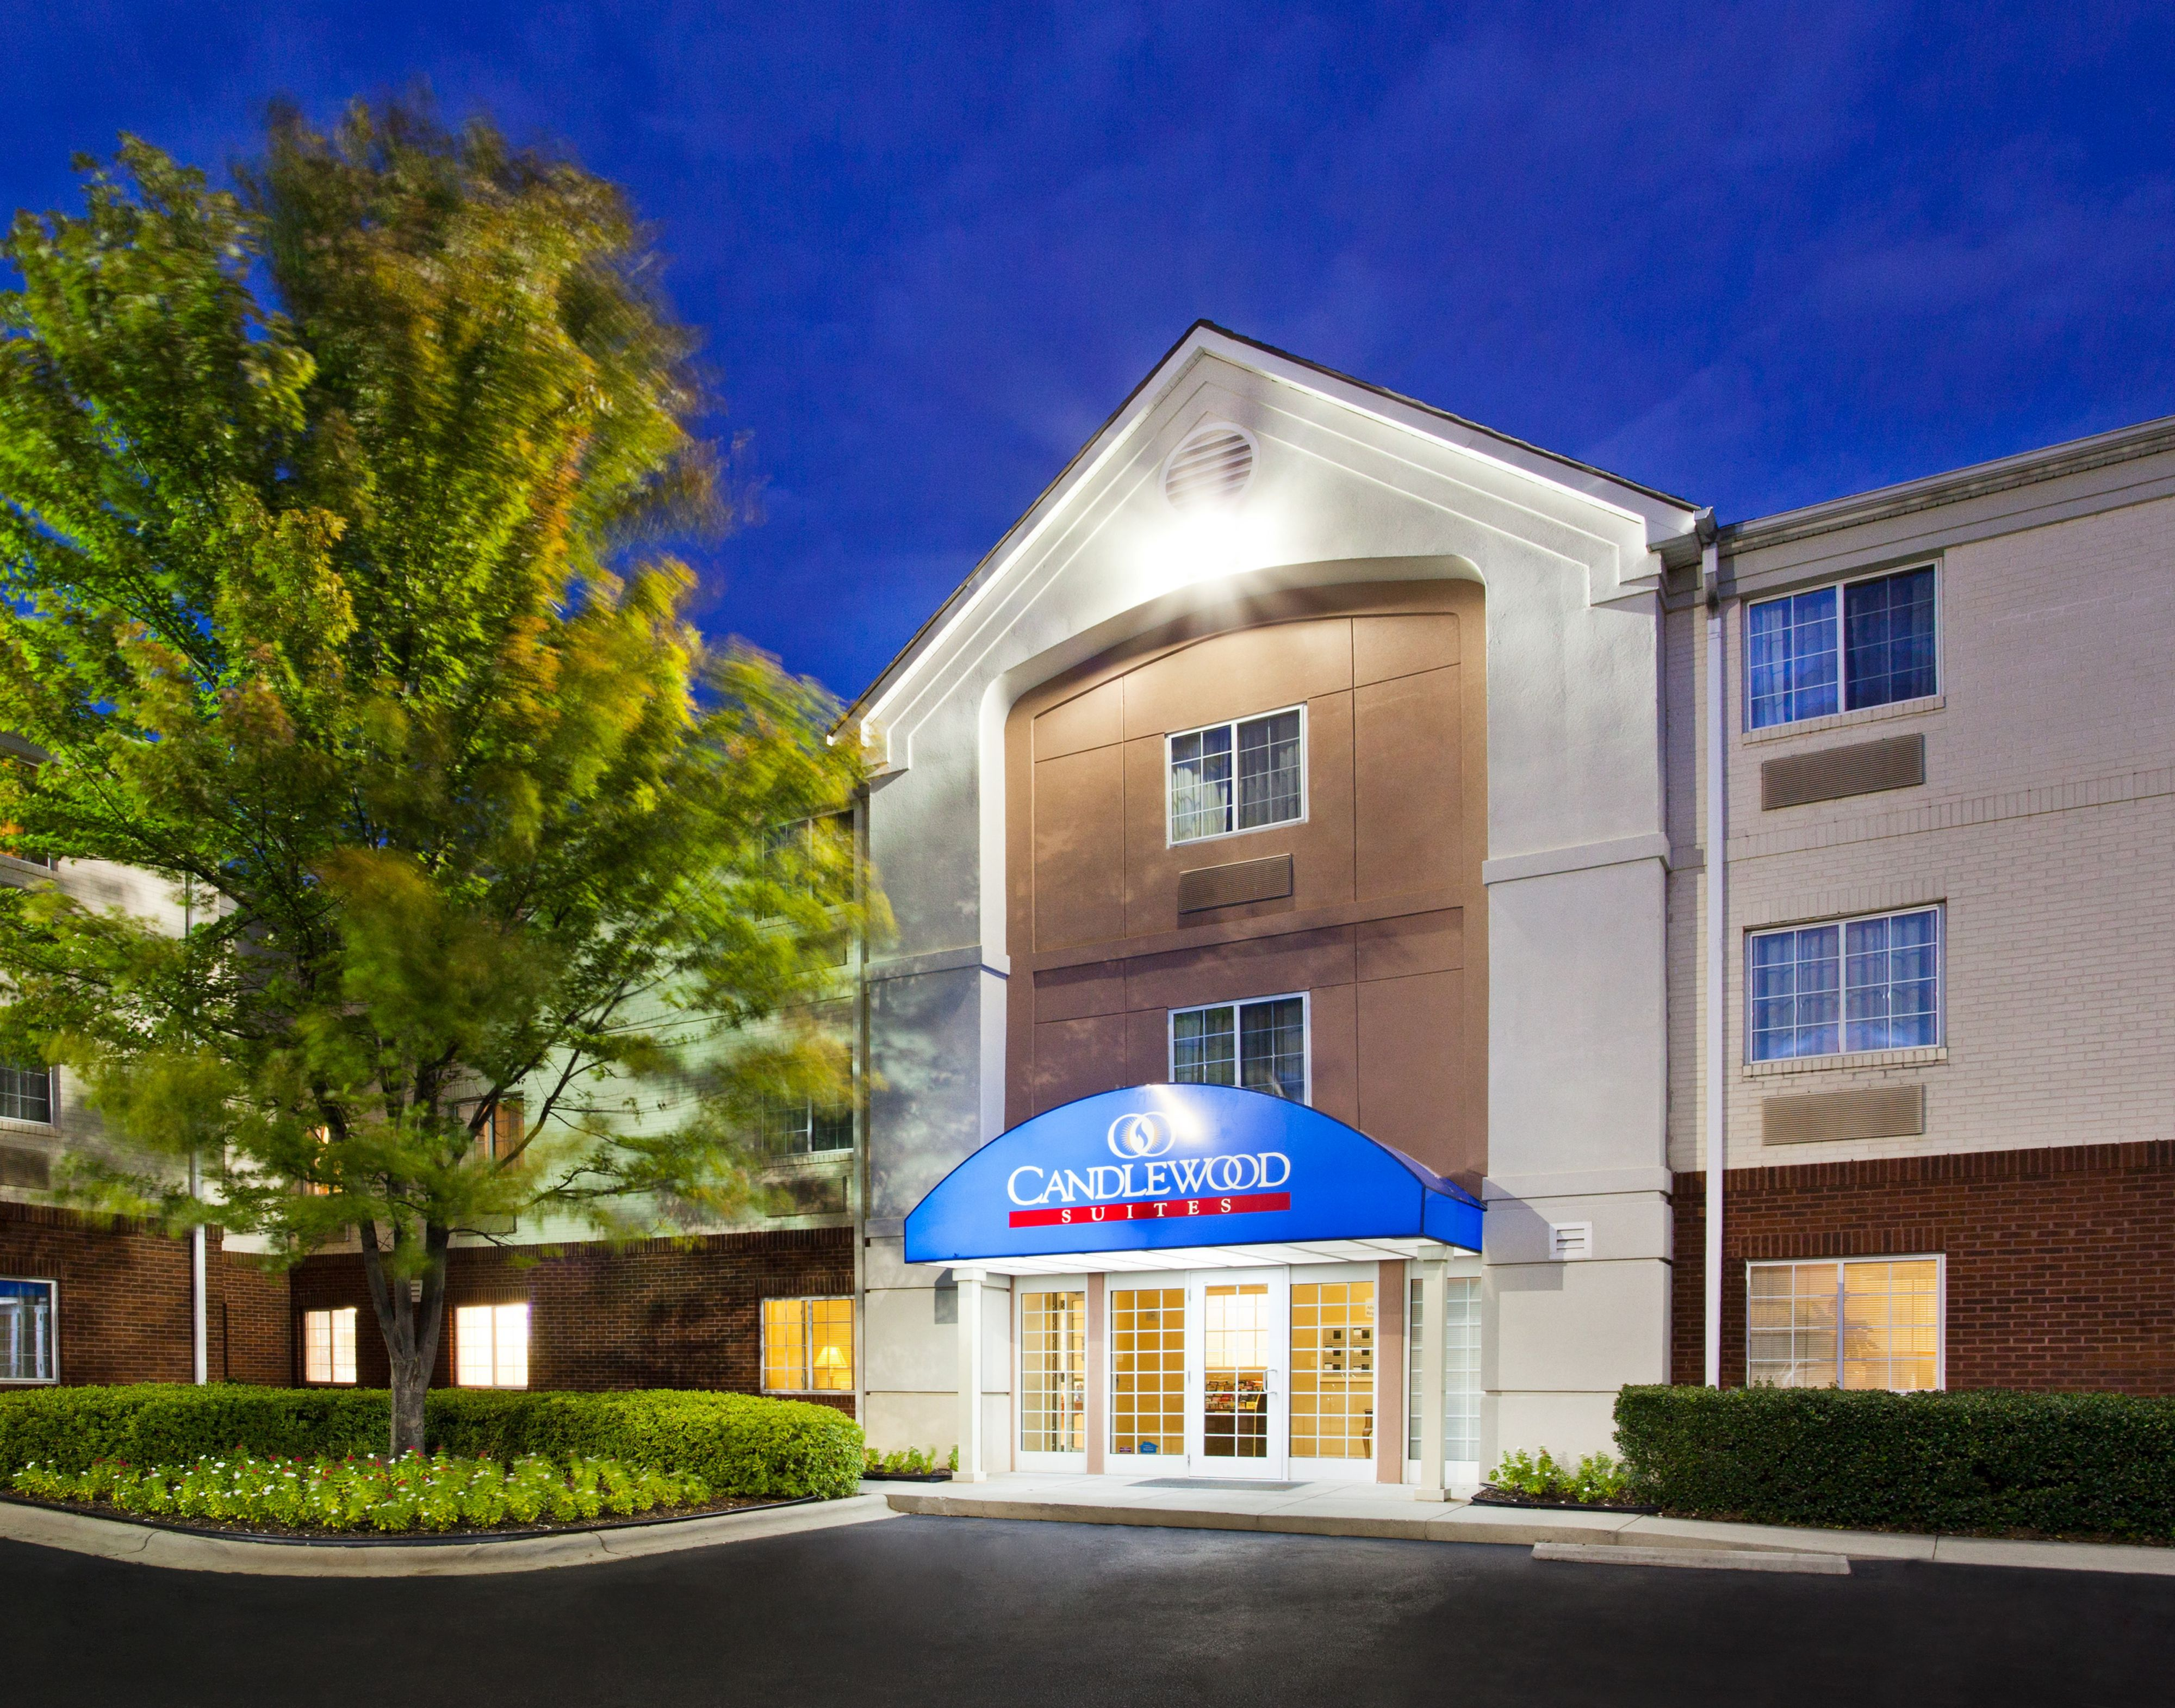 Candlewood suites houston nw willowbrook houston texas - Hilton garden inn houston nw willowbrook ...